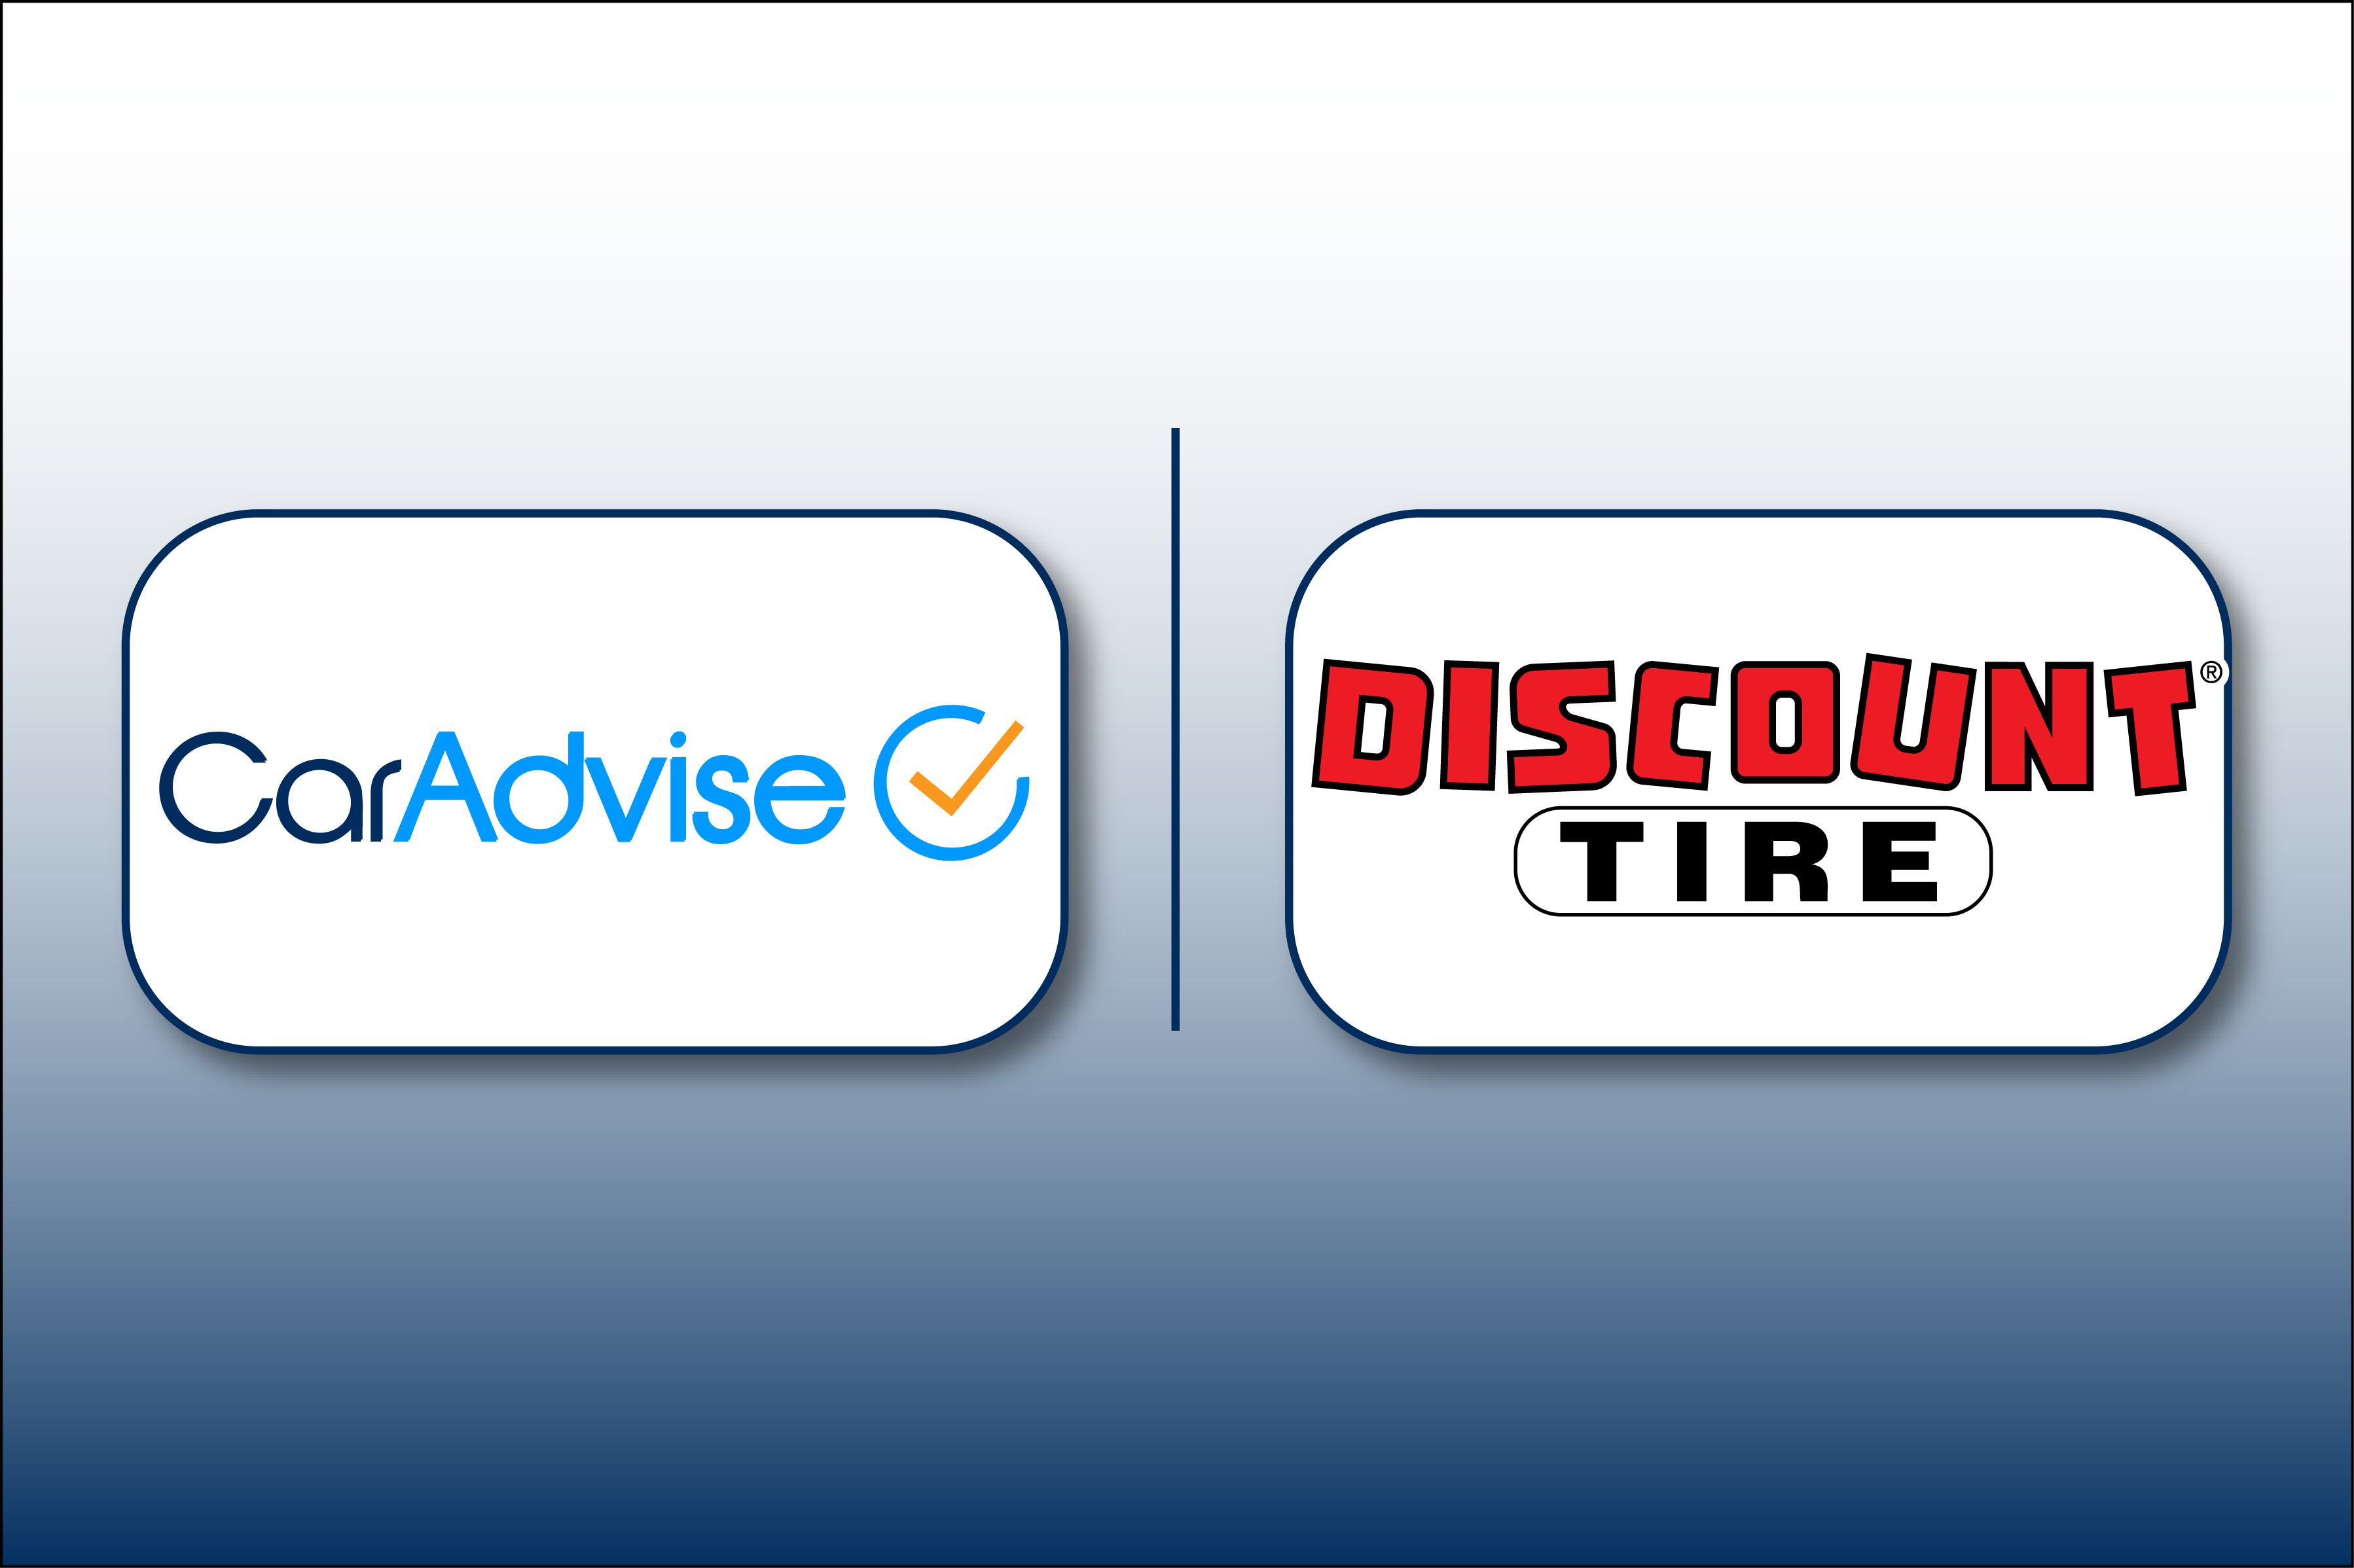 CarAdvise and Discount Tire Partnership